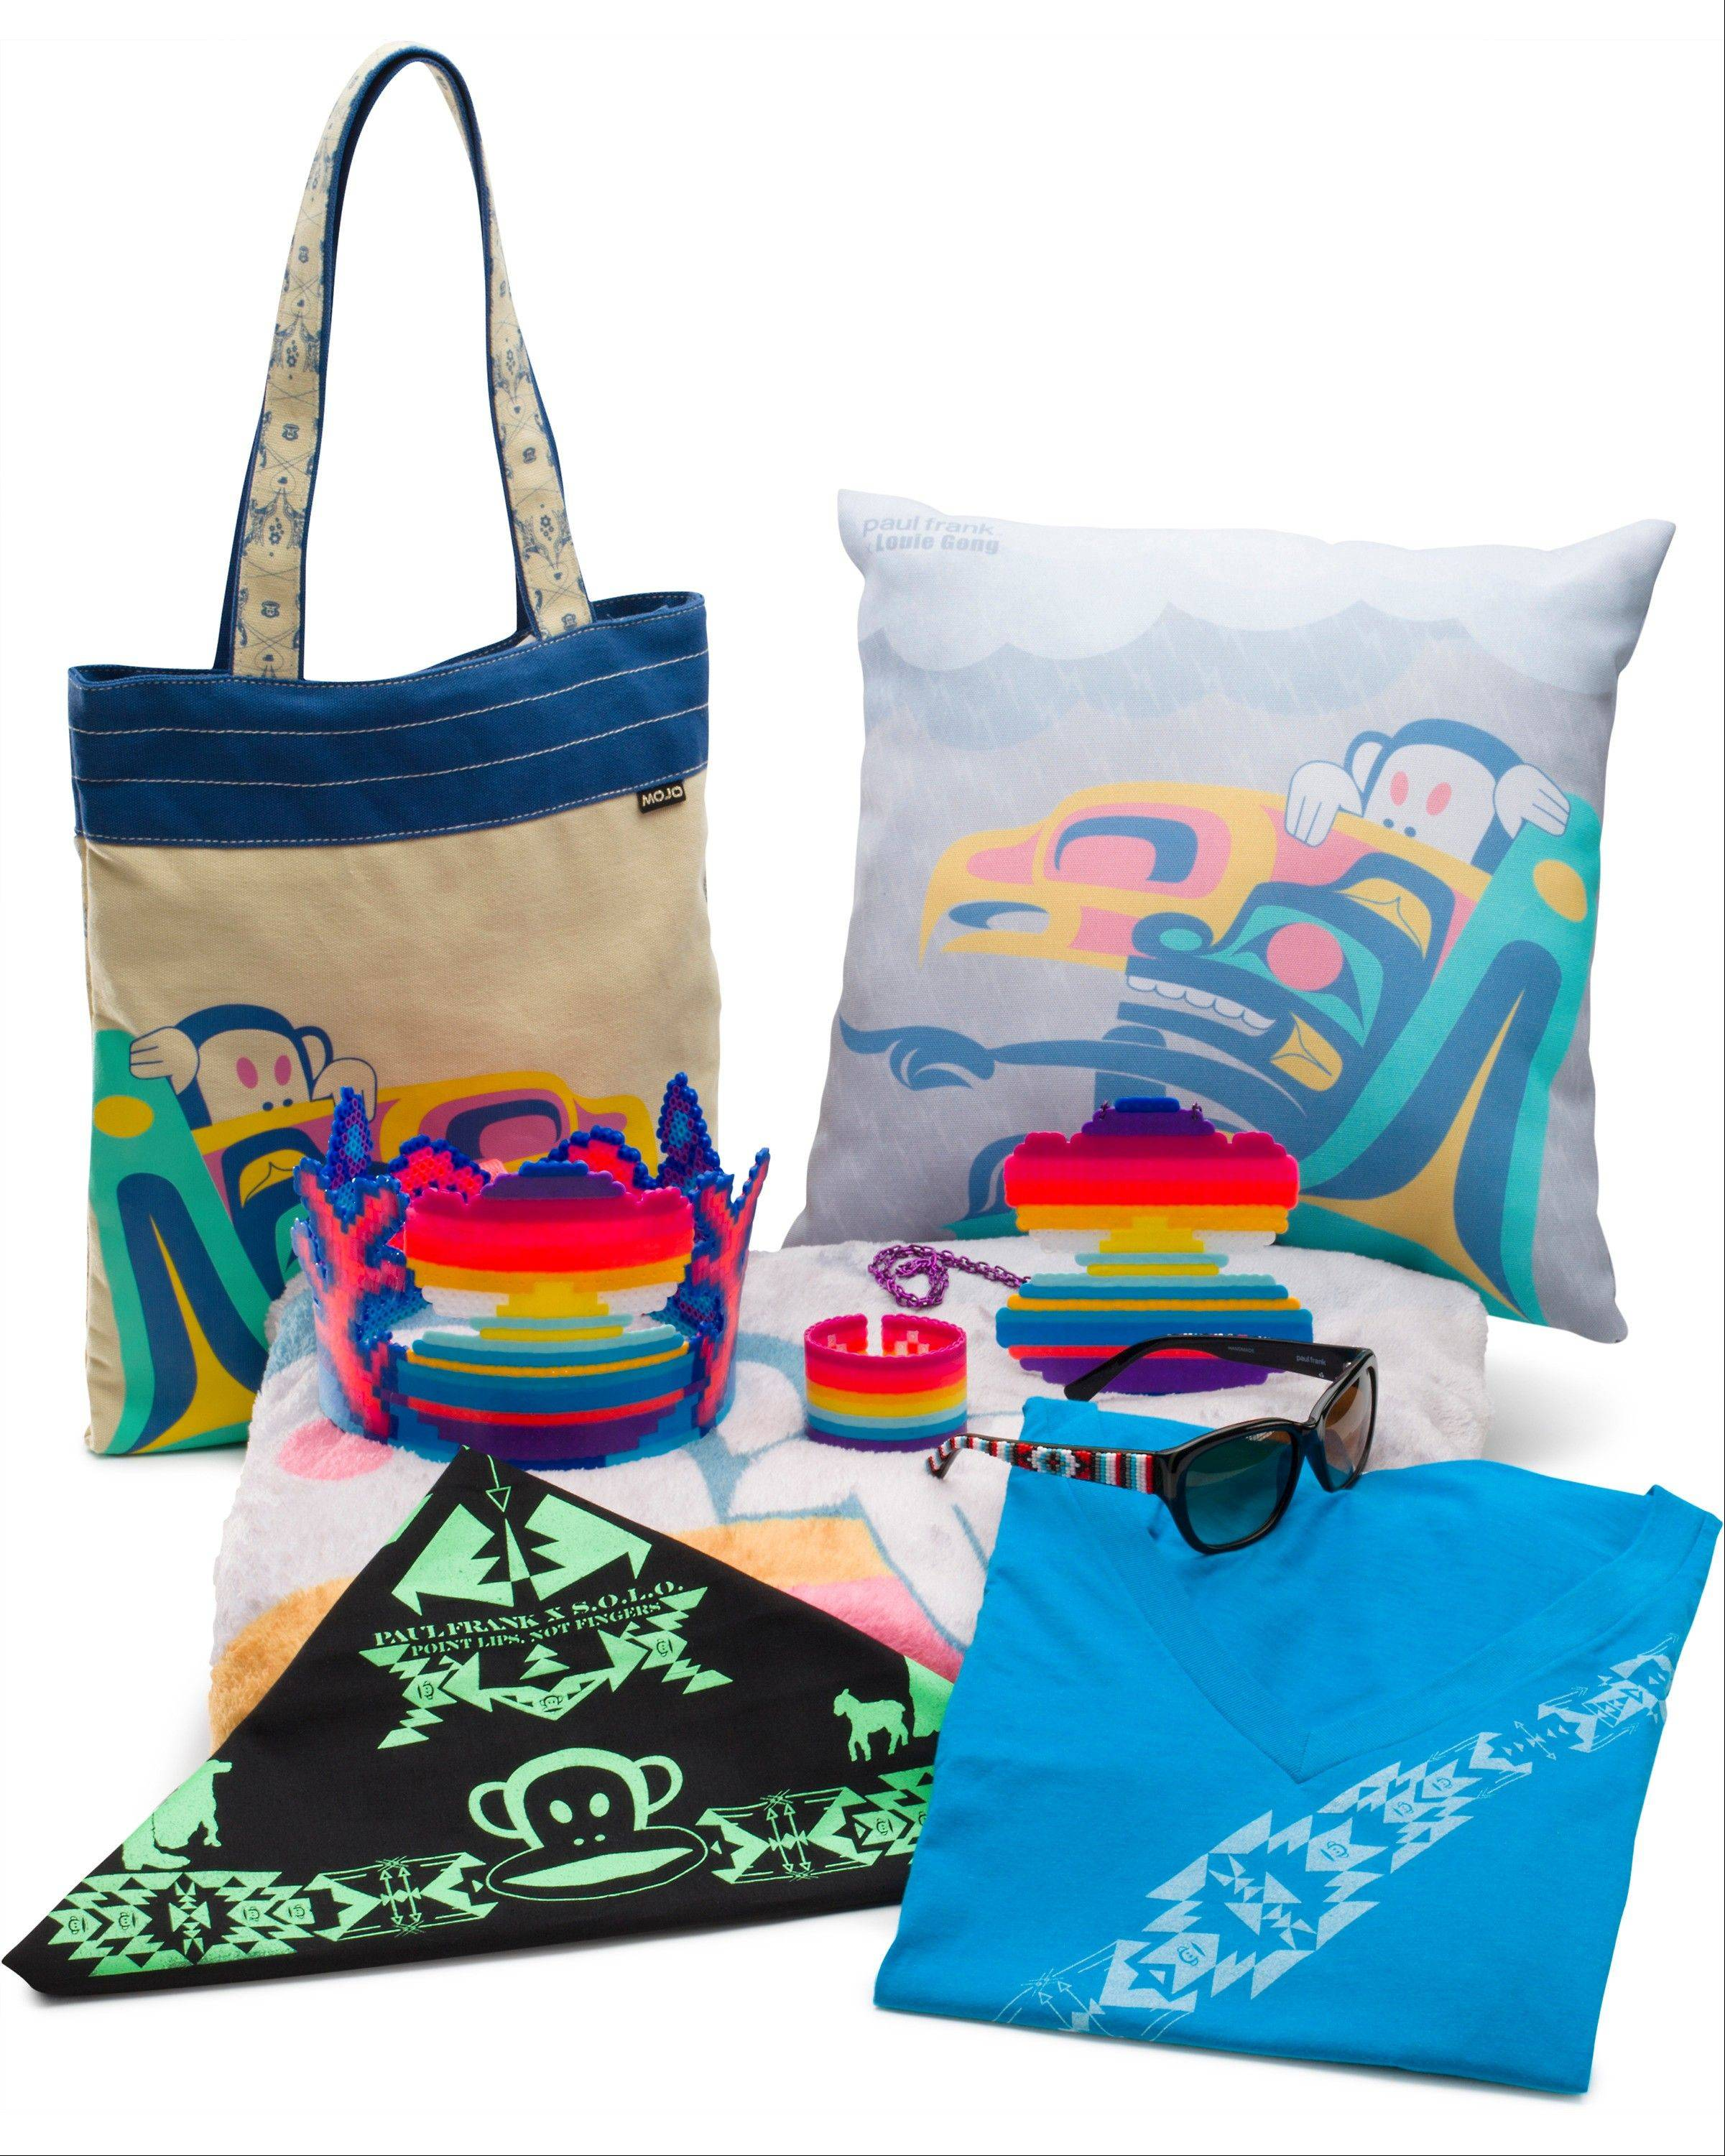 Merchandise created through a collaboration with four Native American artists and designers.